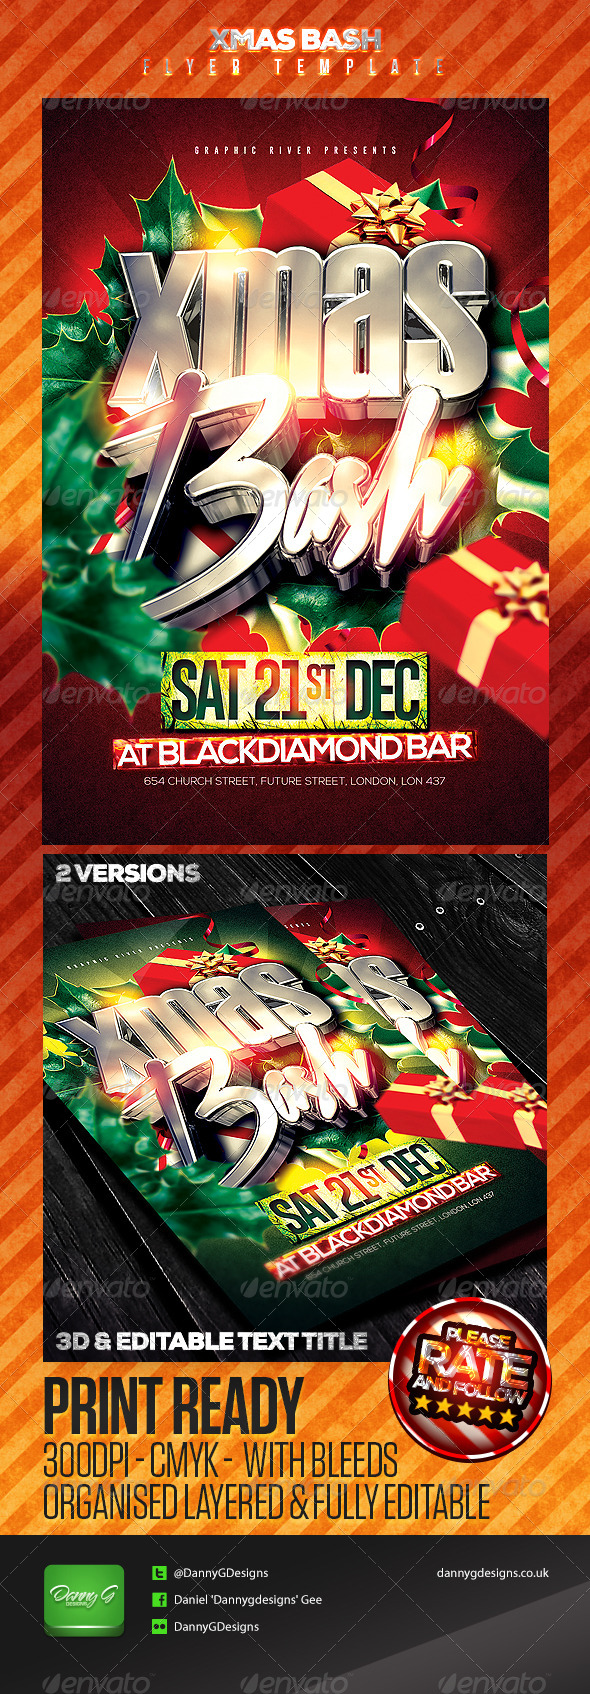 GraphicRiver Xmas Bash Flyer Template 6048261